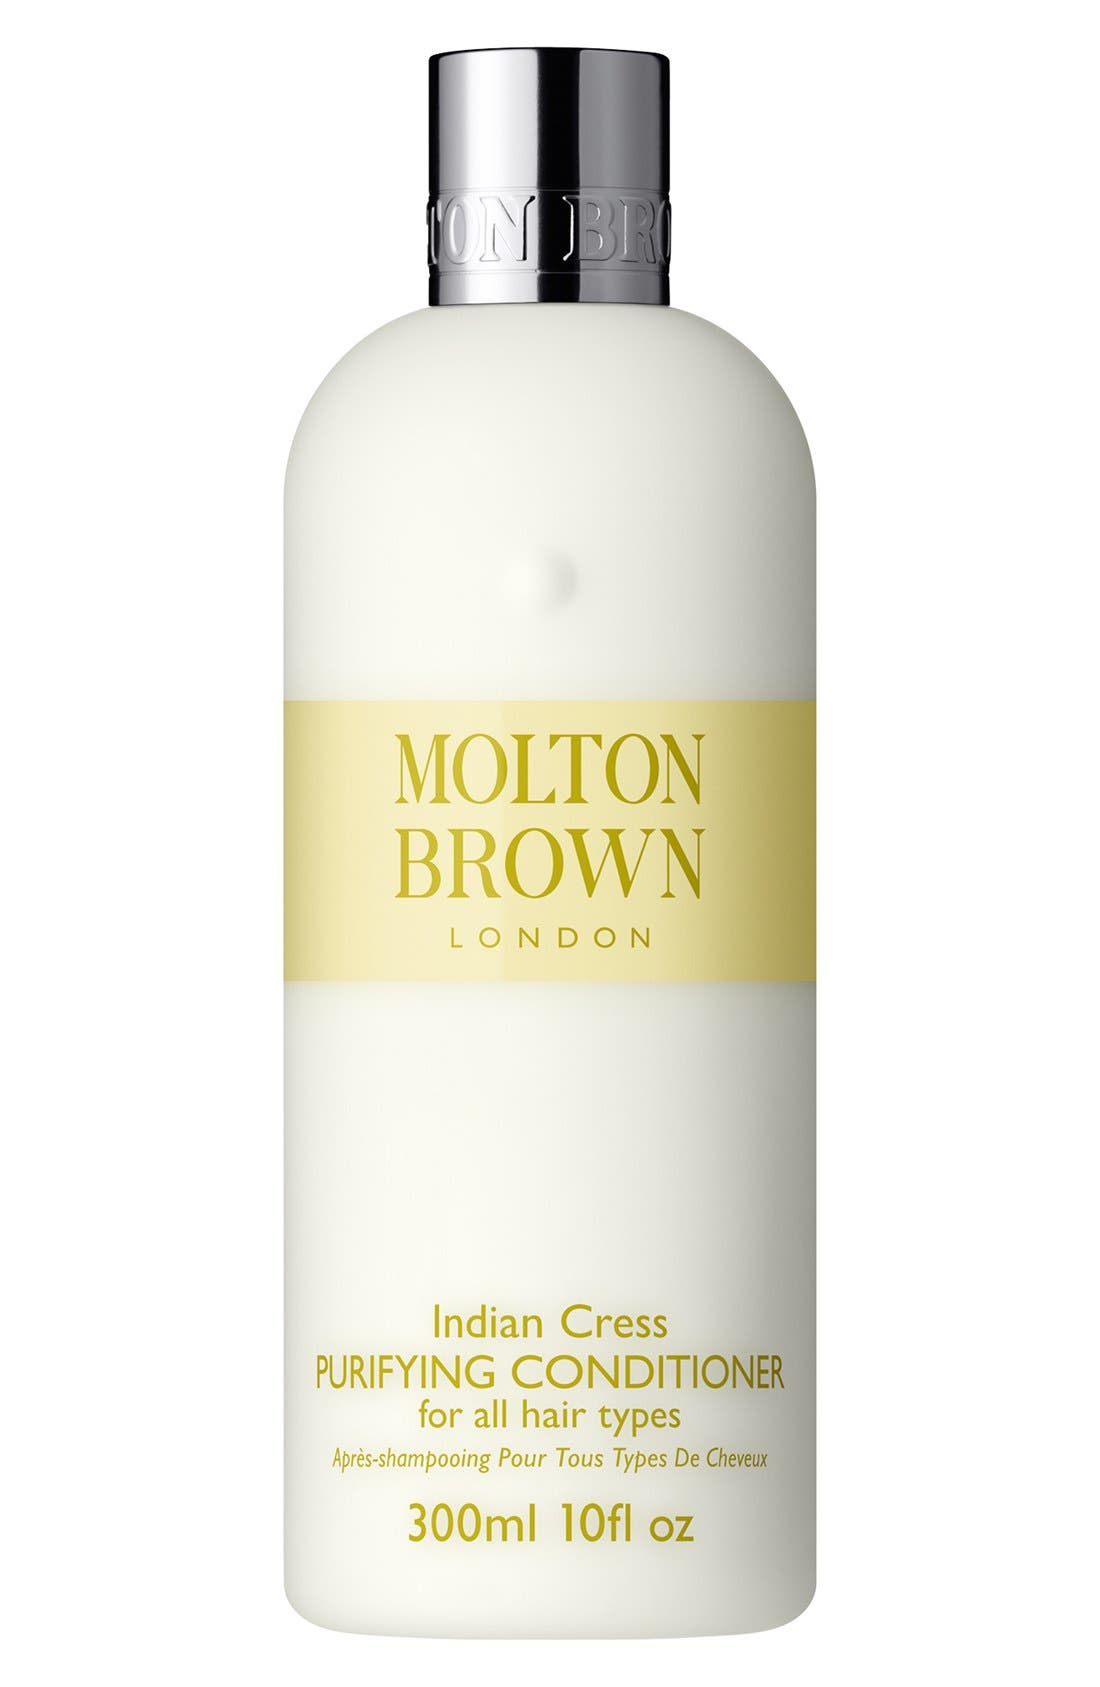 MOLTON BROWN London Indian Cress Purifying Conditioner